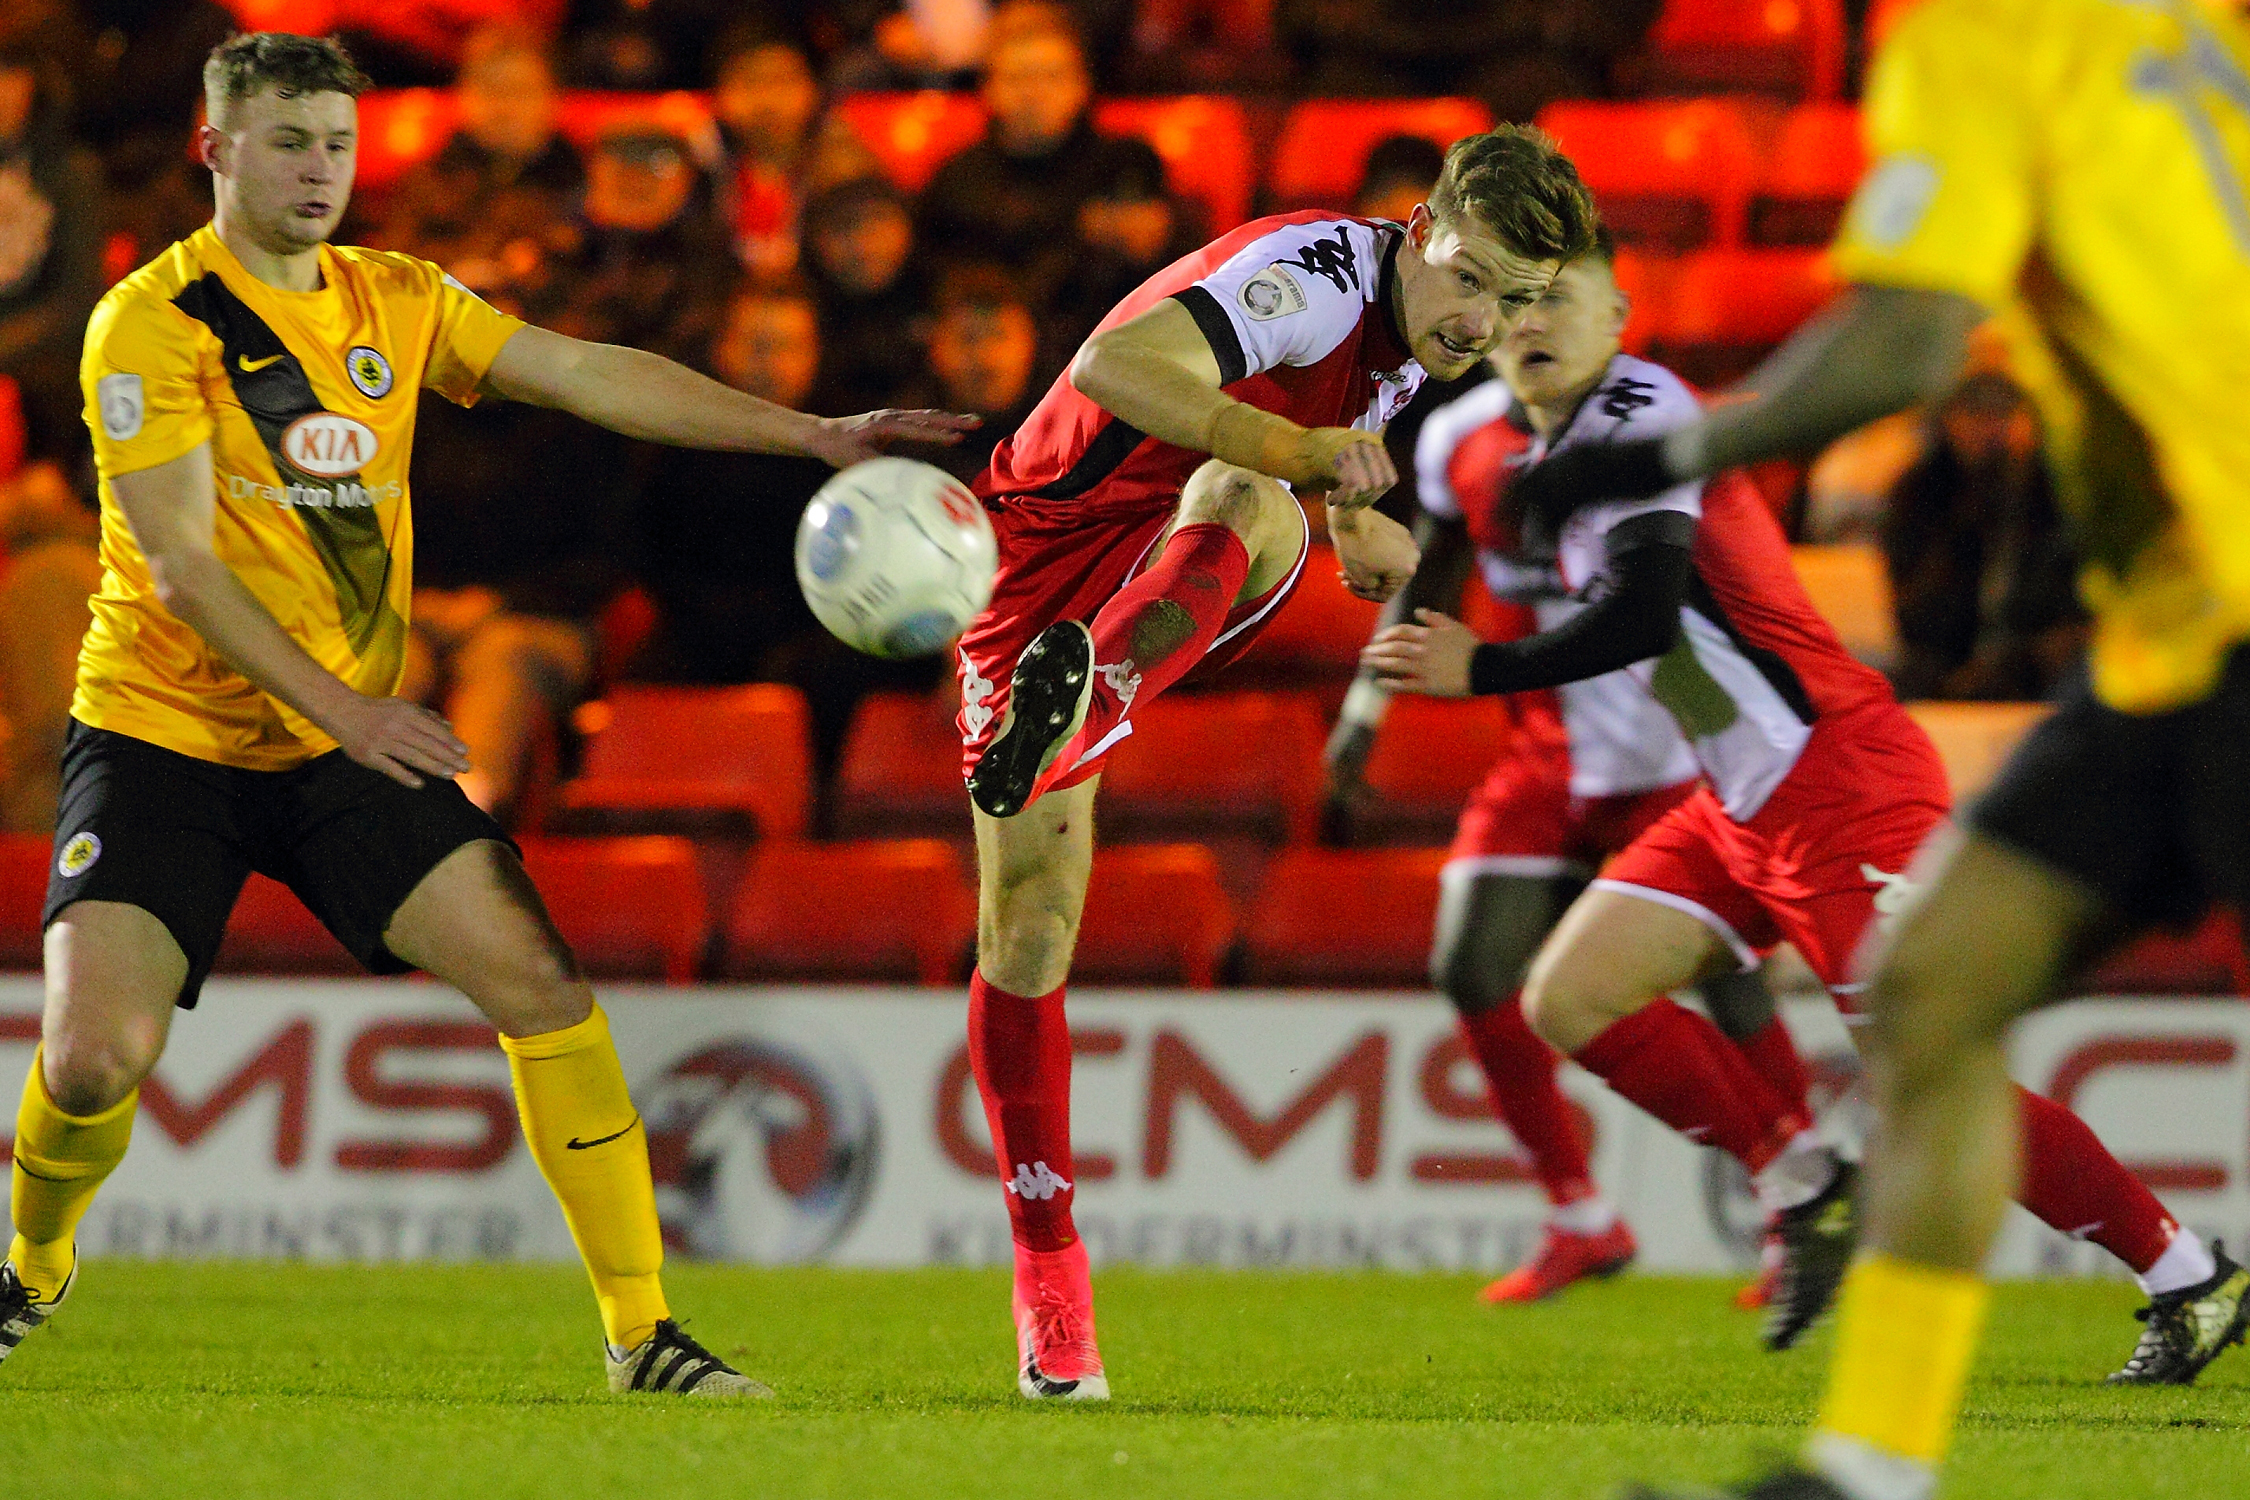 IRON WILL: Joe Ironside's single-minded forward play has helped him net 18 times for Kidderminster Harriers this season, but the ex-Sheffield United attacker is still not certain of a starting place against York City tonight